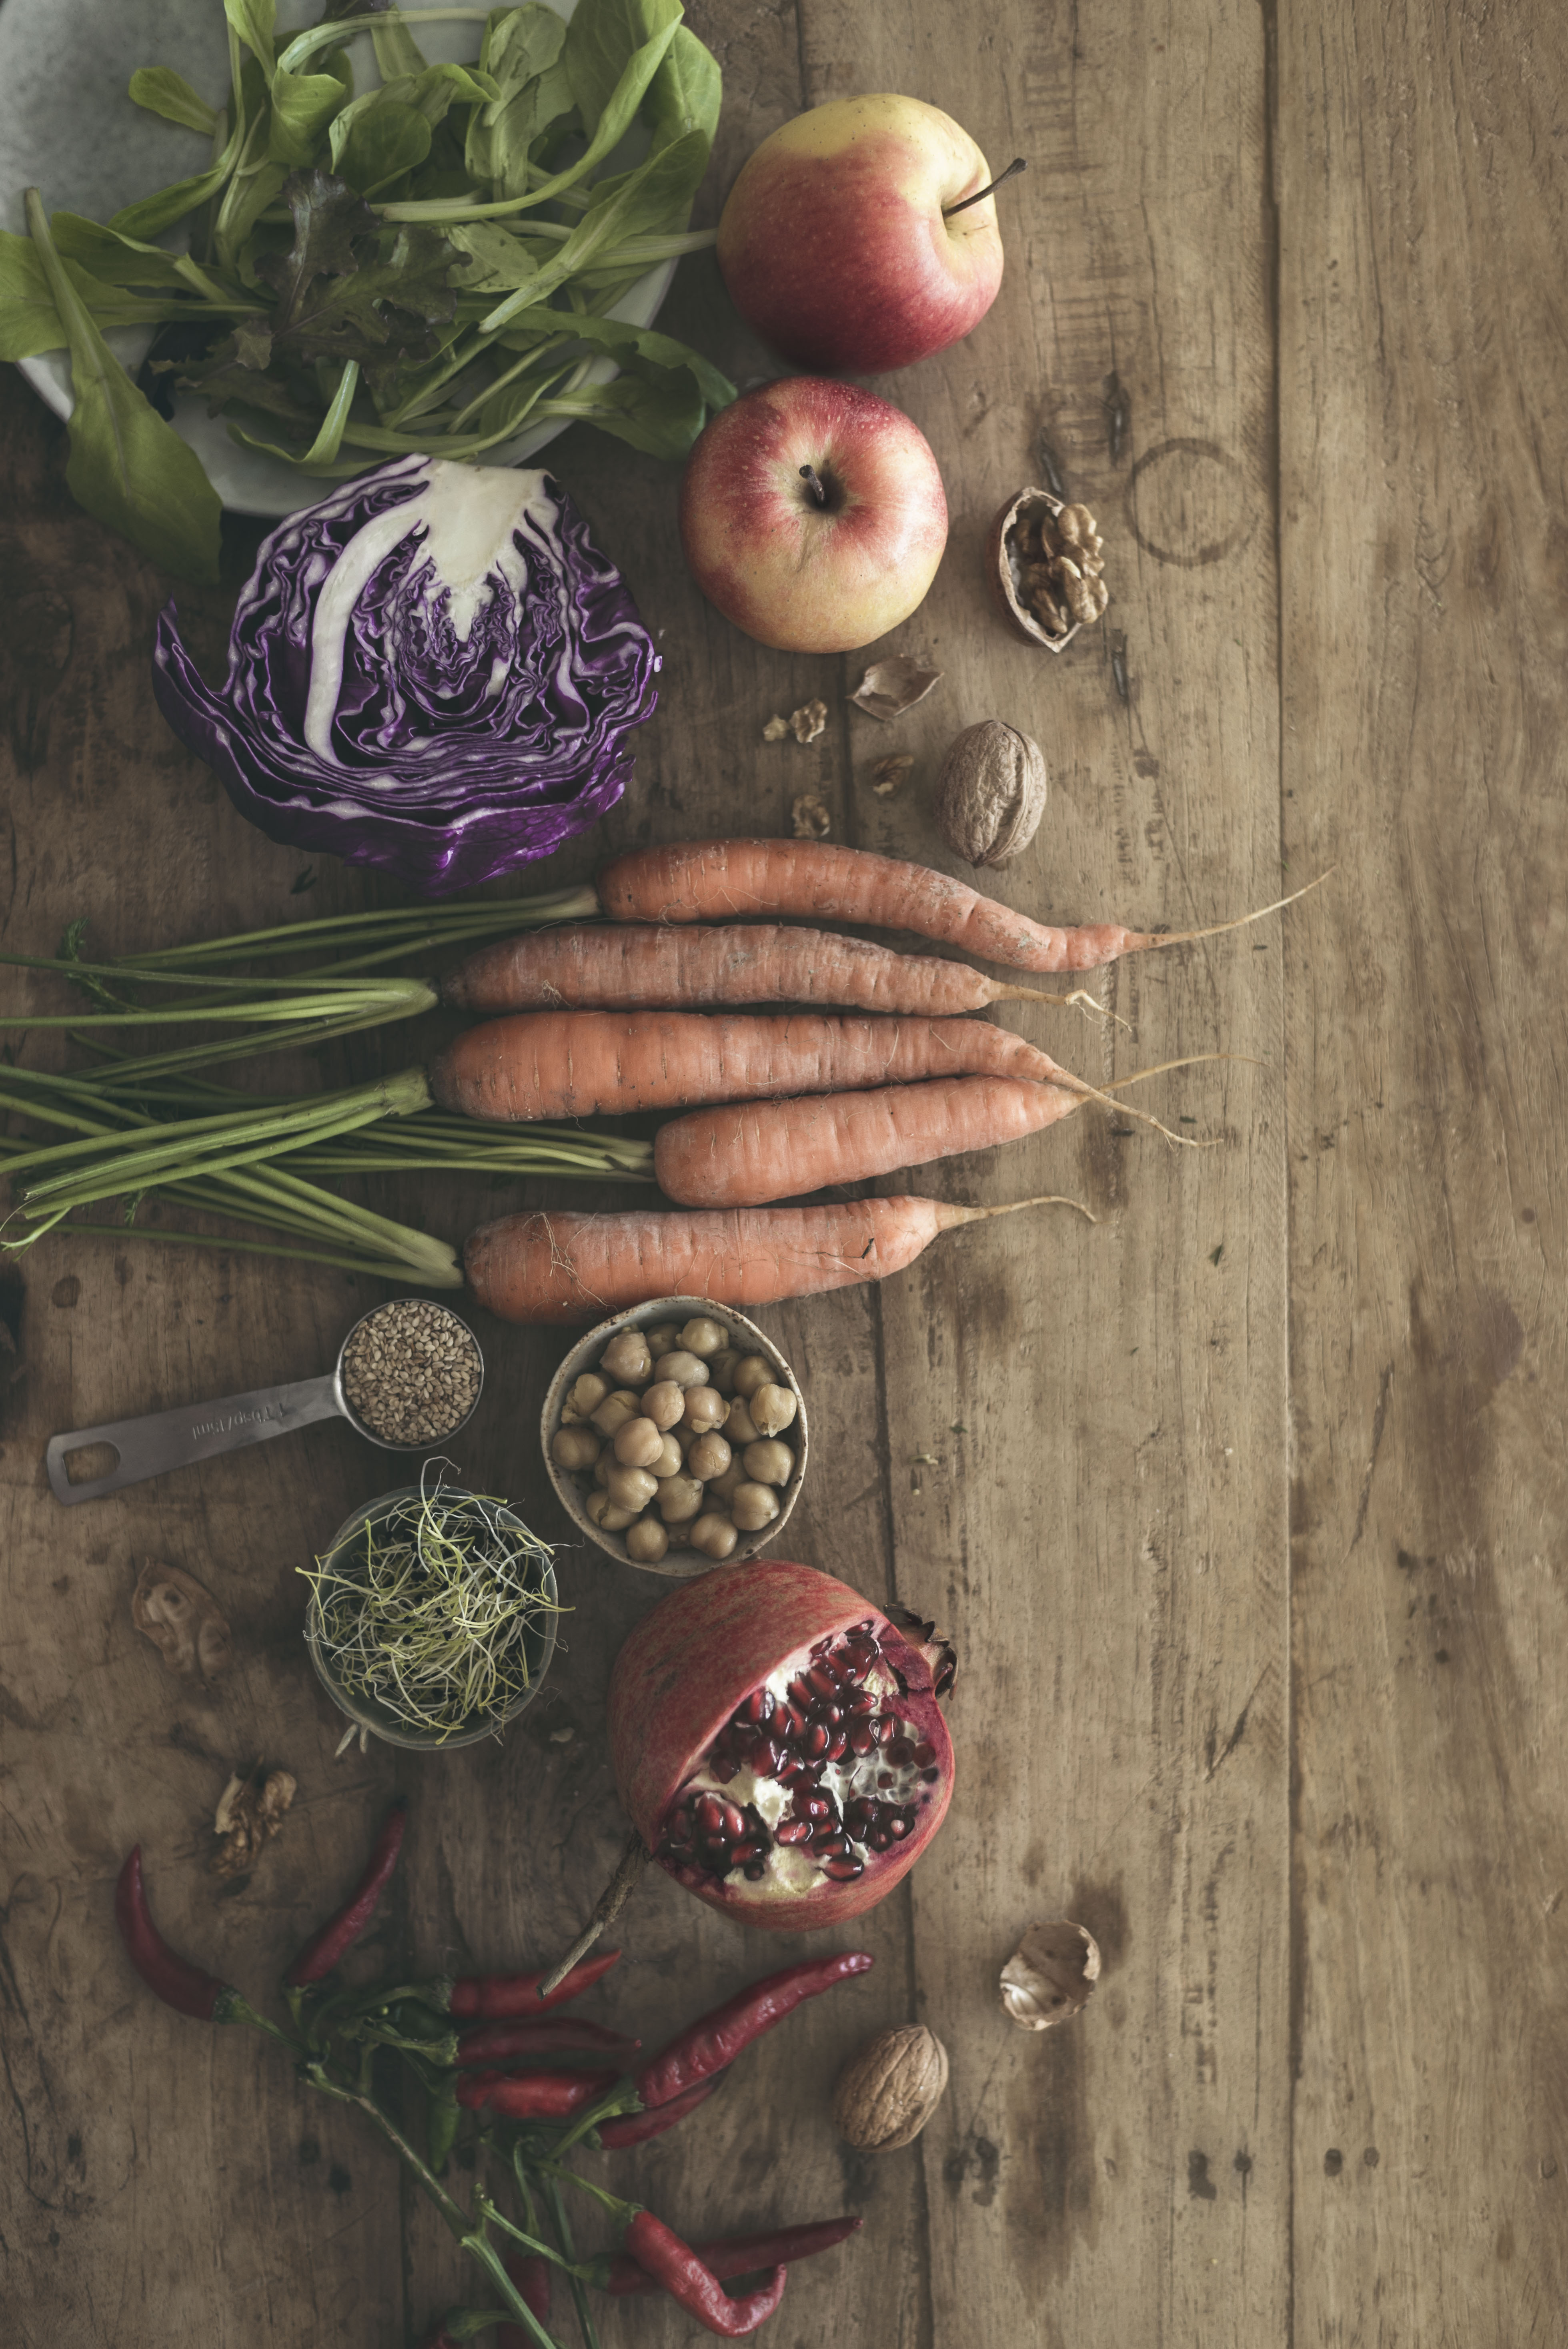 fall vegetables styling on a wooden rustic table